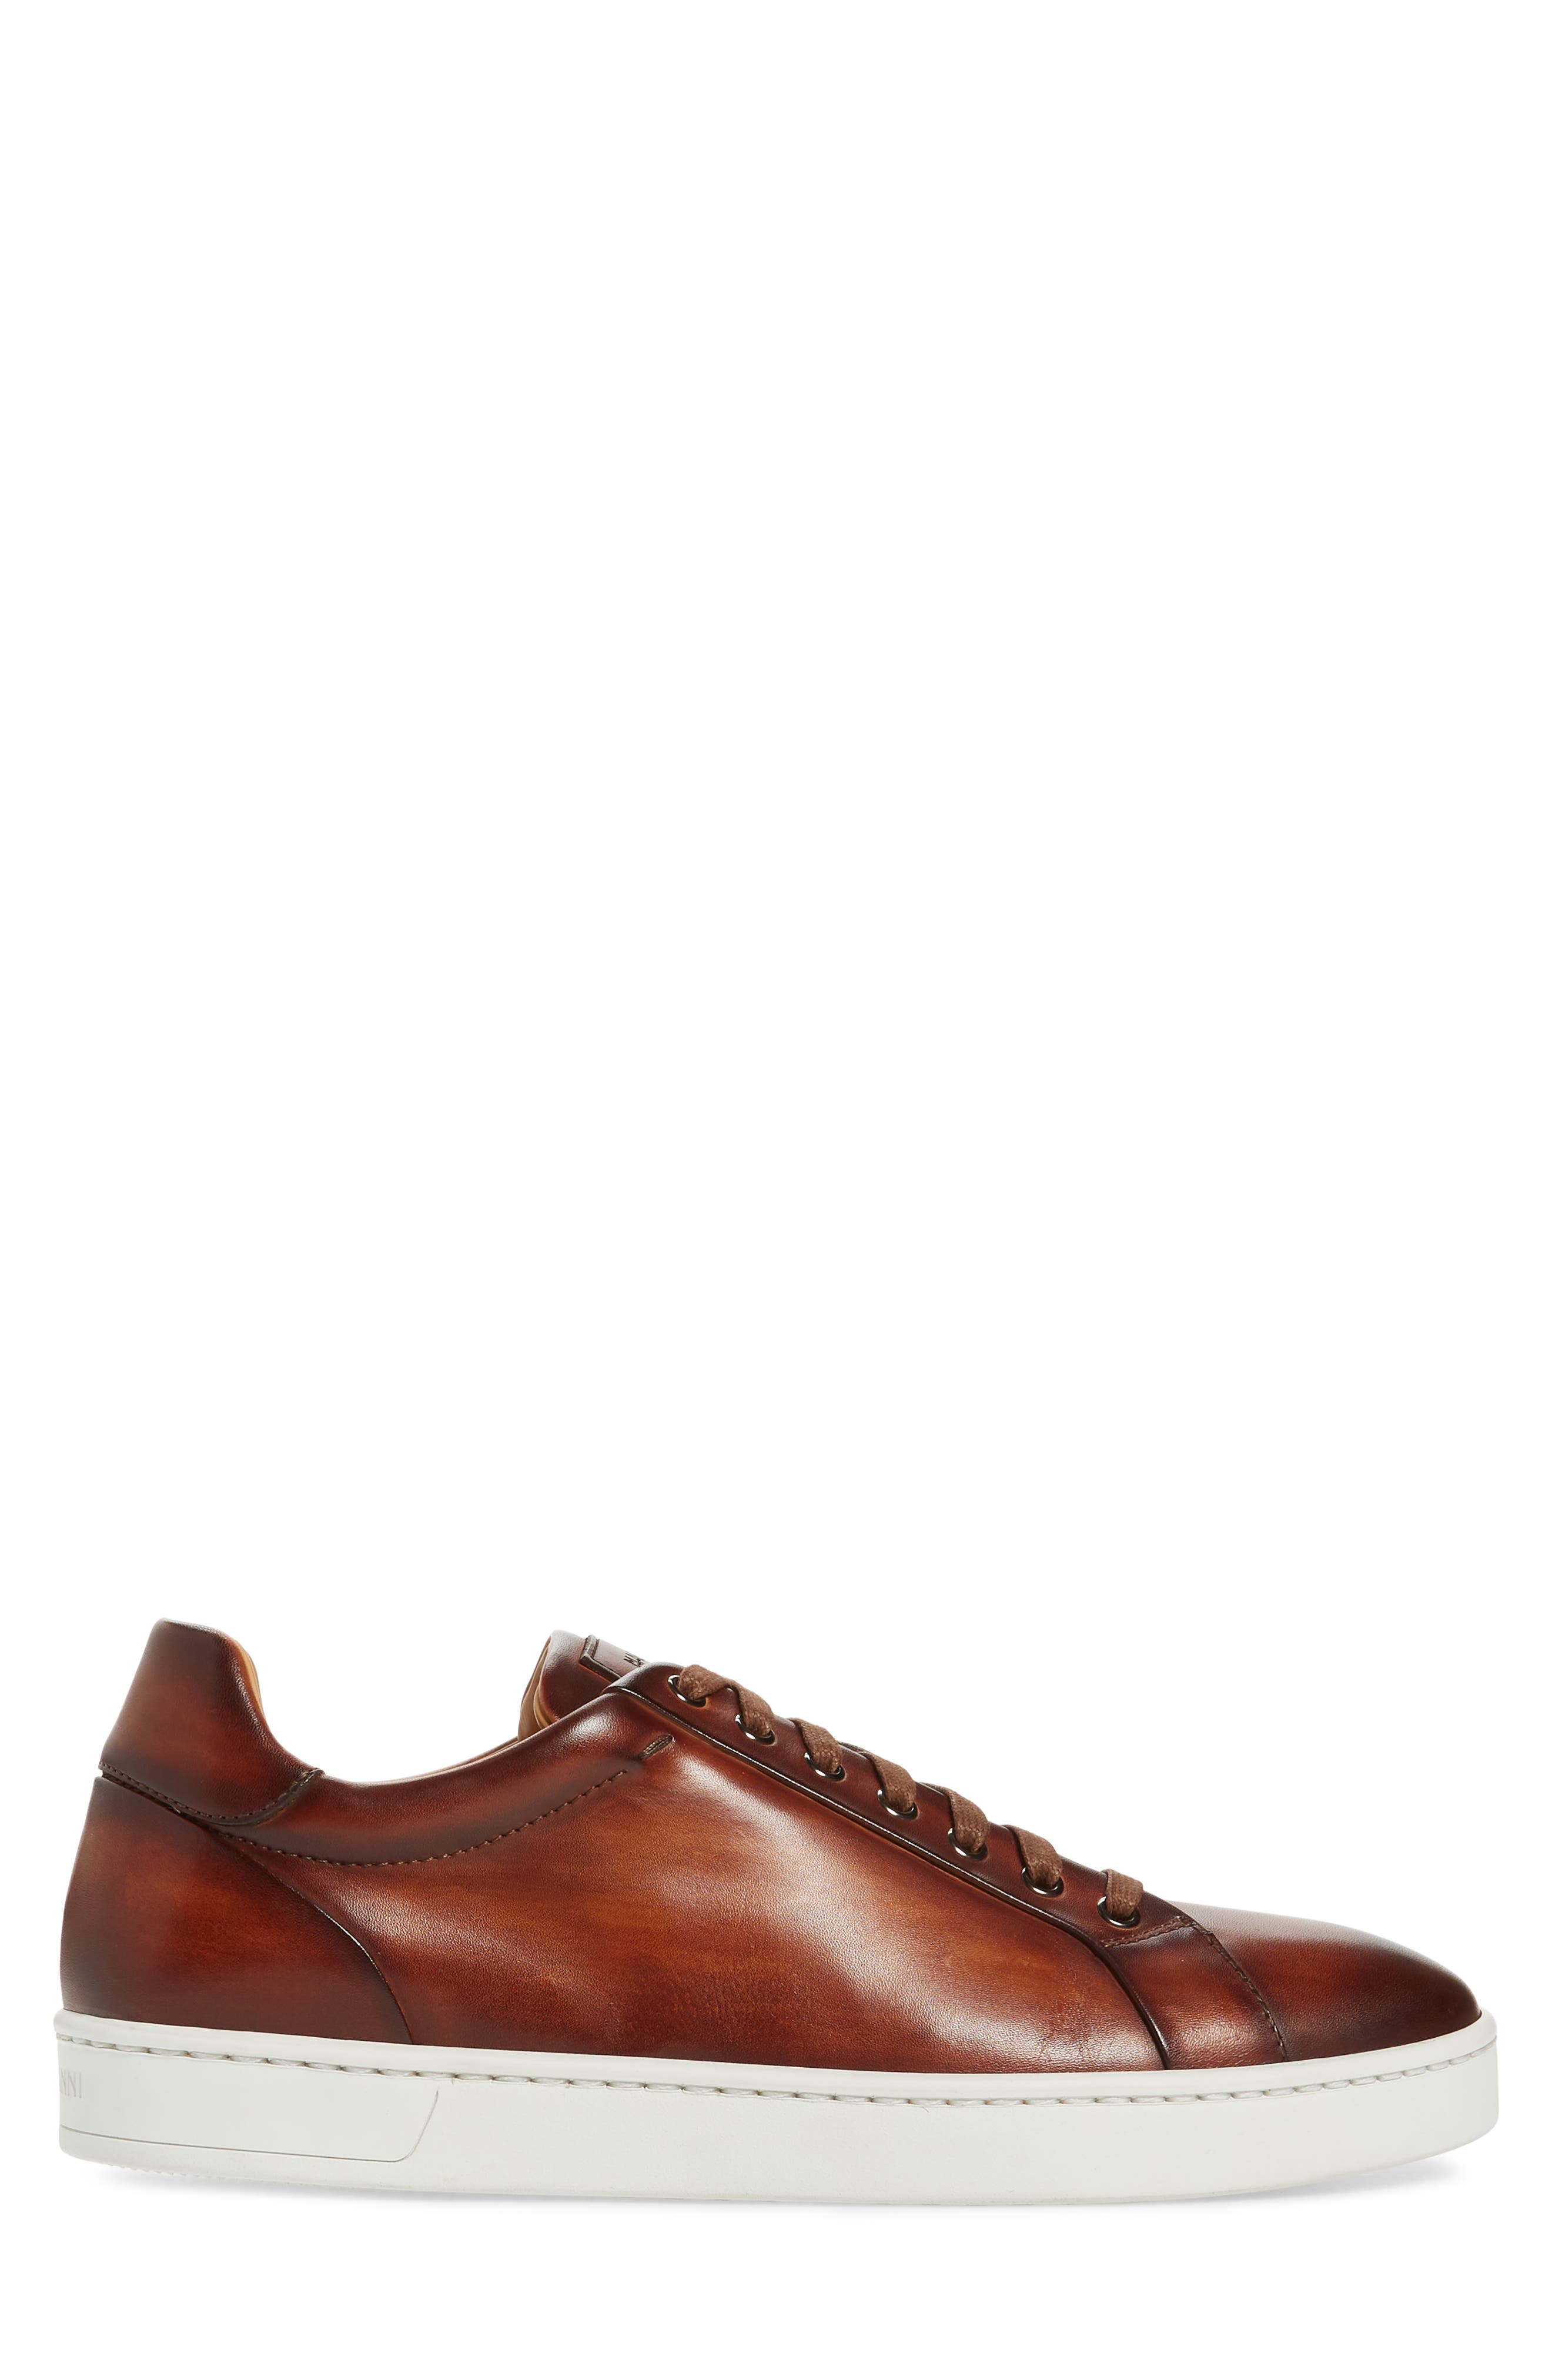 Elonso Low Top Sneaker,                             Alternate thumbnail 3, color,                             COGNAC LEATHER